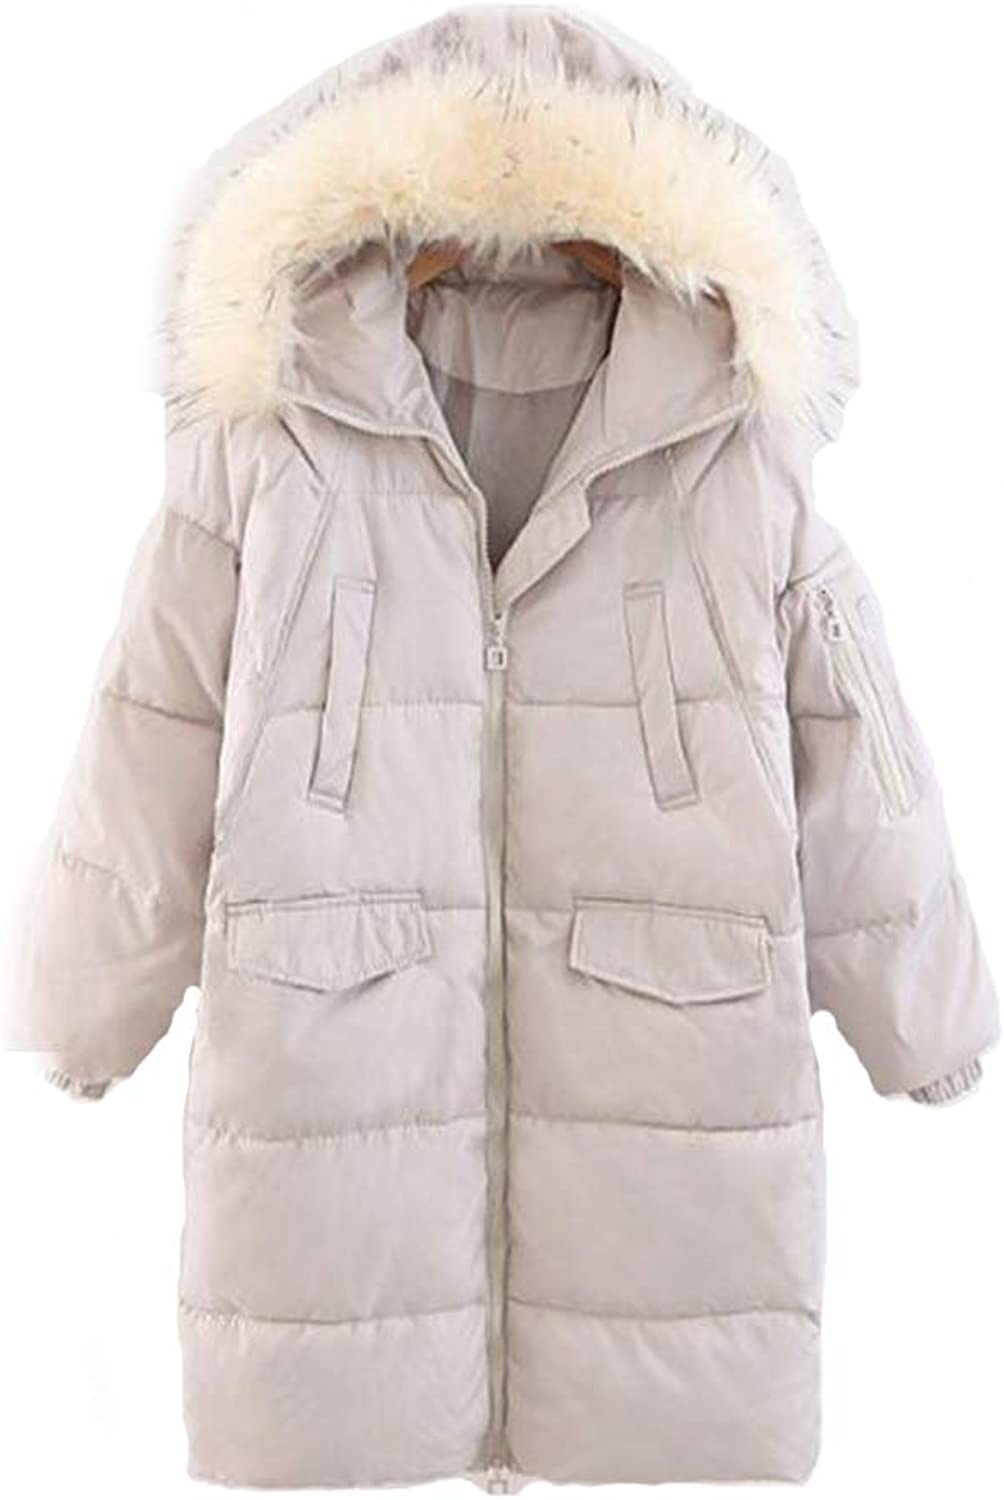 Fashion Cotton Coat Thicken Winter Woman Jacket, Warm and Windproof Casual Hooded (MXXL) Long section,XL